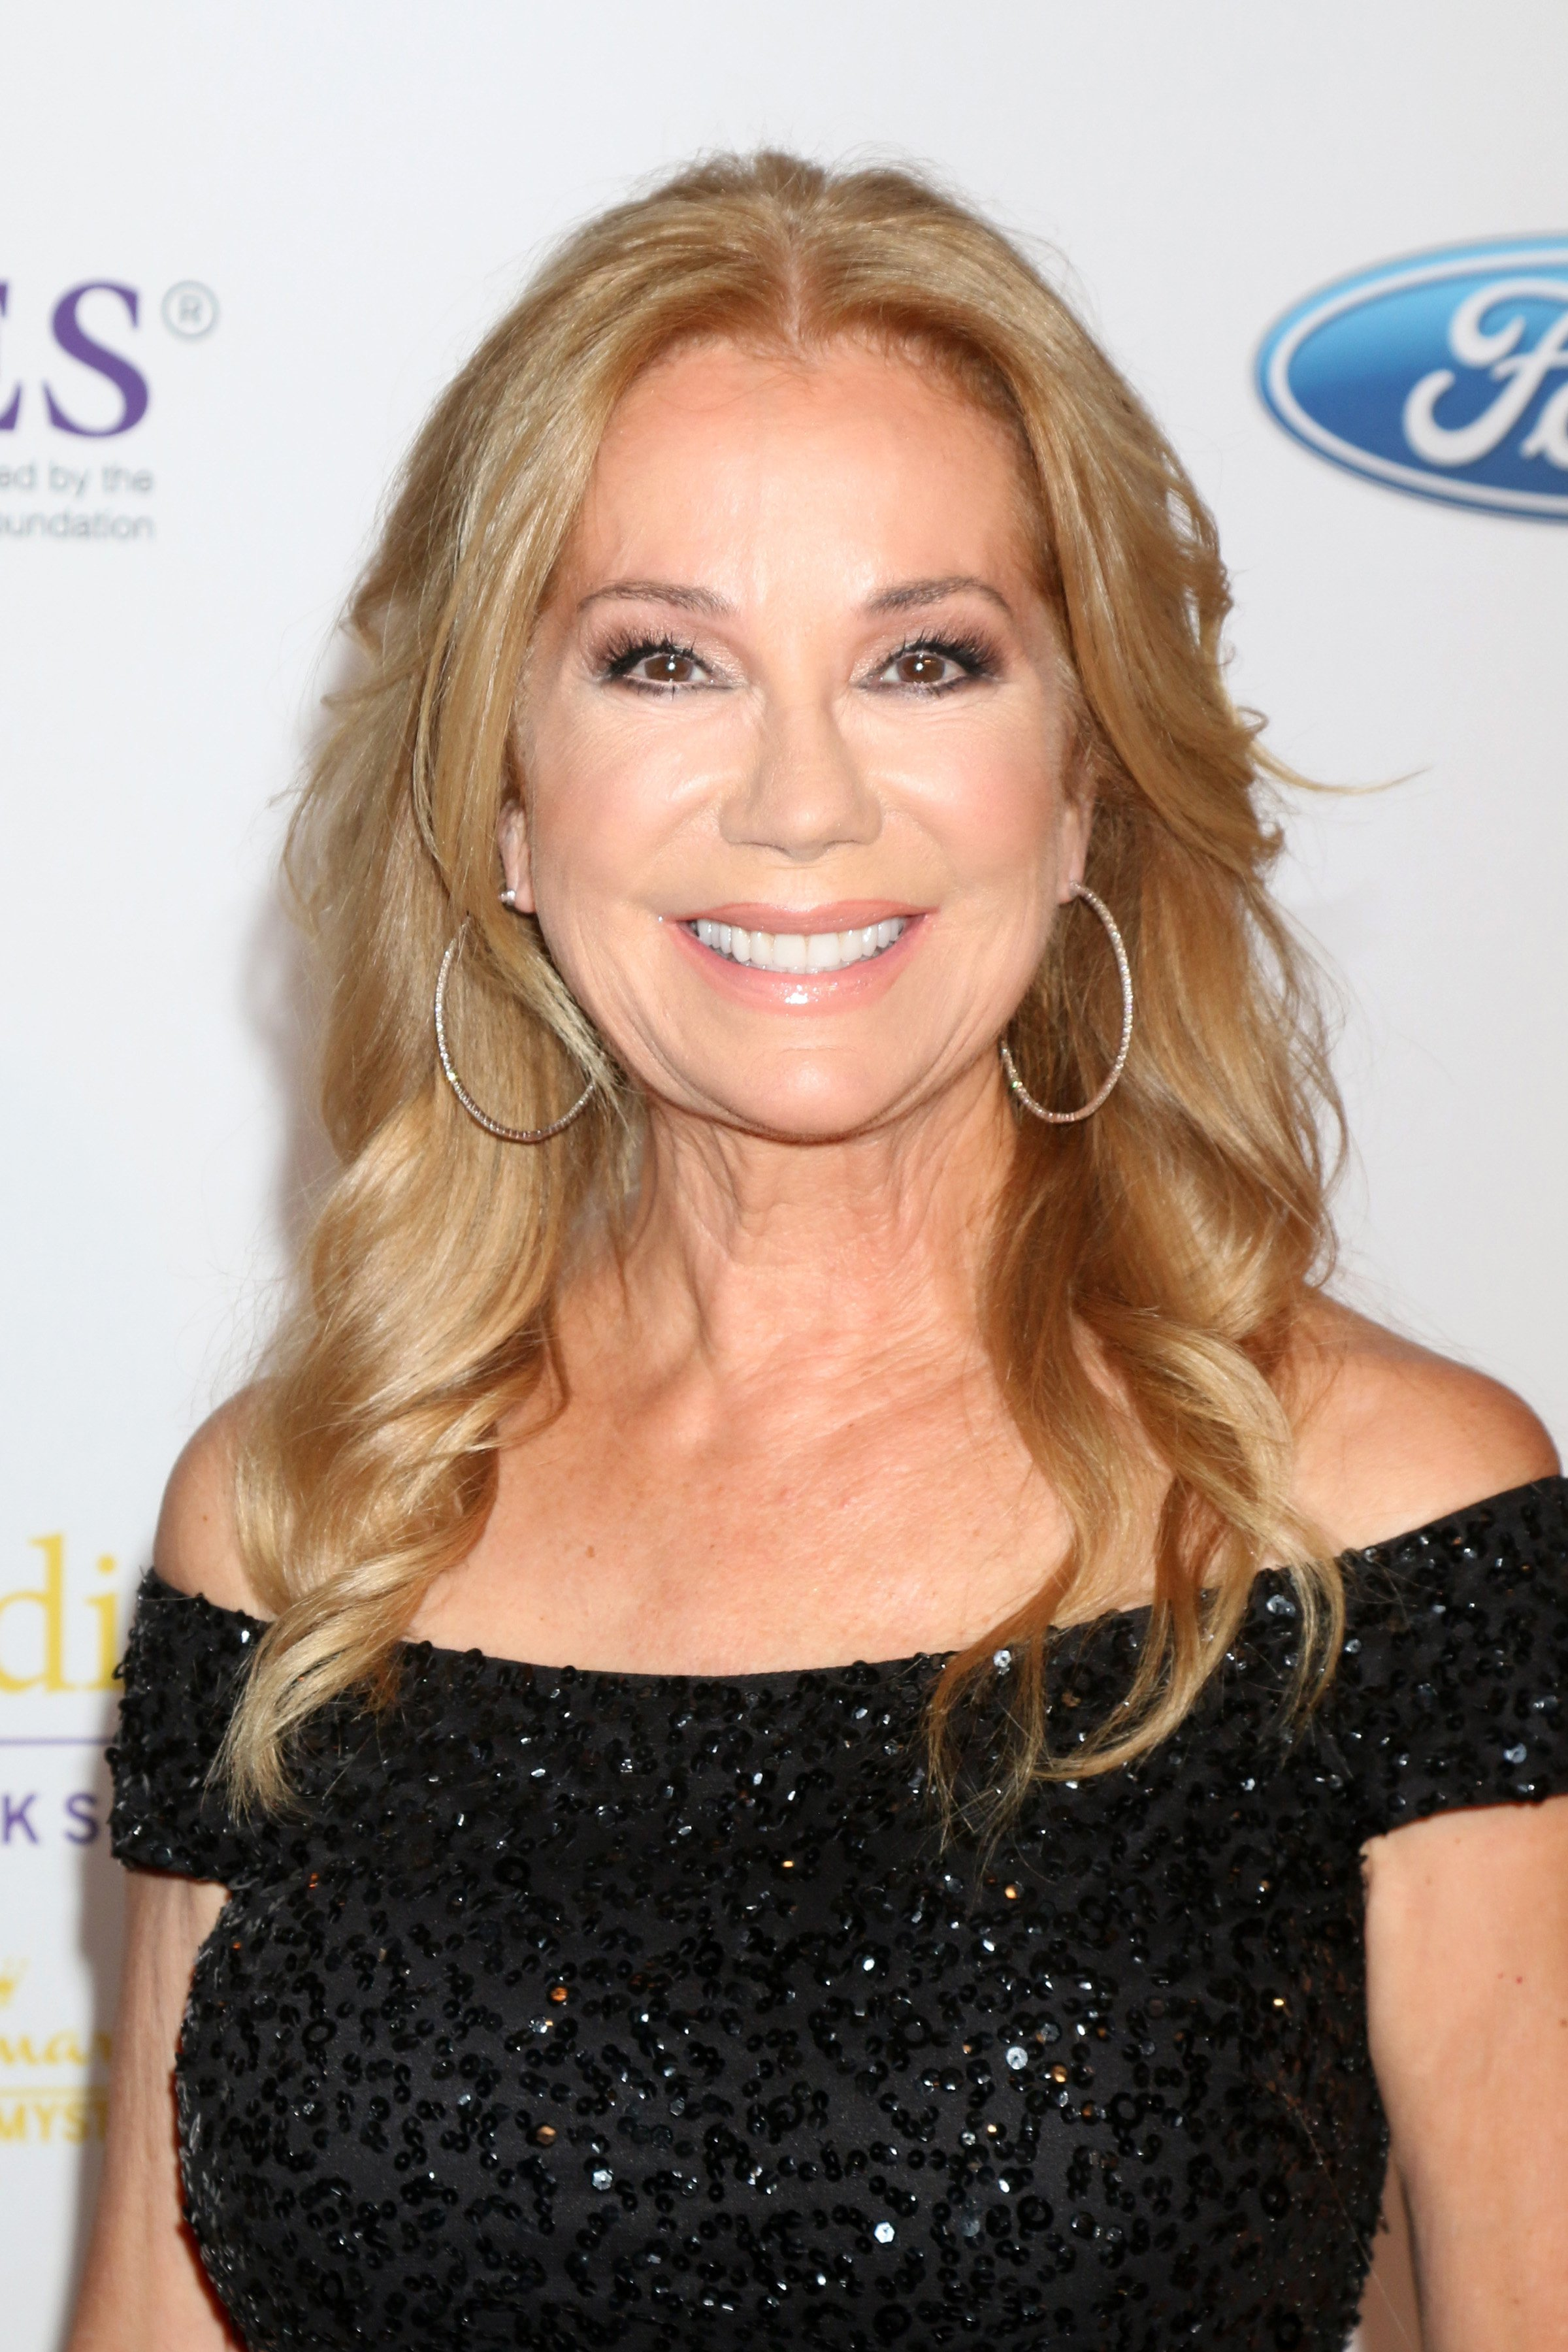 LOS ANGELES - MAY 24: Kathie Lee Gifford at the 41st Annual Gracie Awards Gala on May 24, 2016 in Beverly Hills, CA | Source: Shutterstock